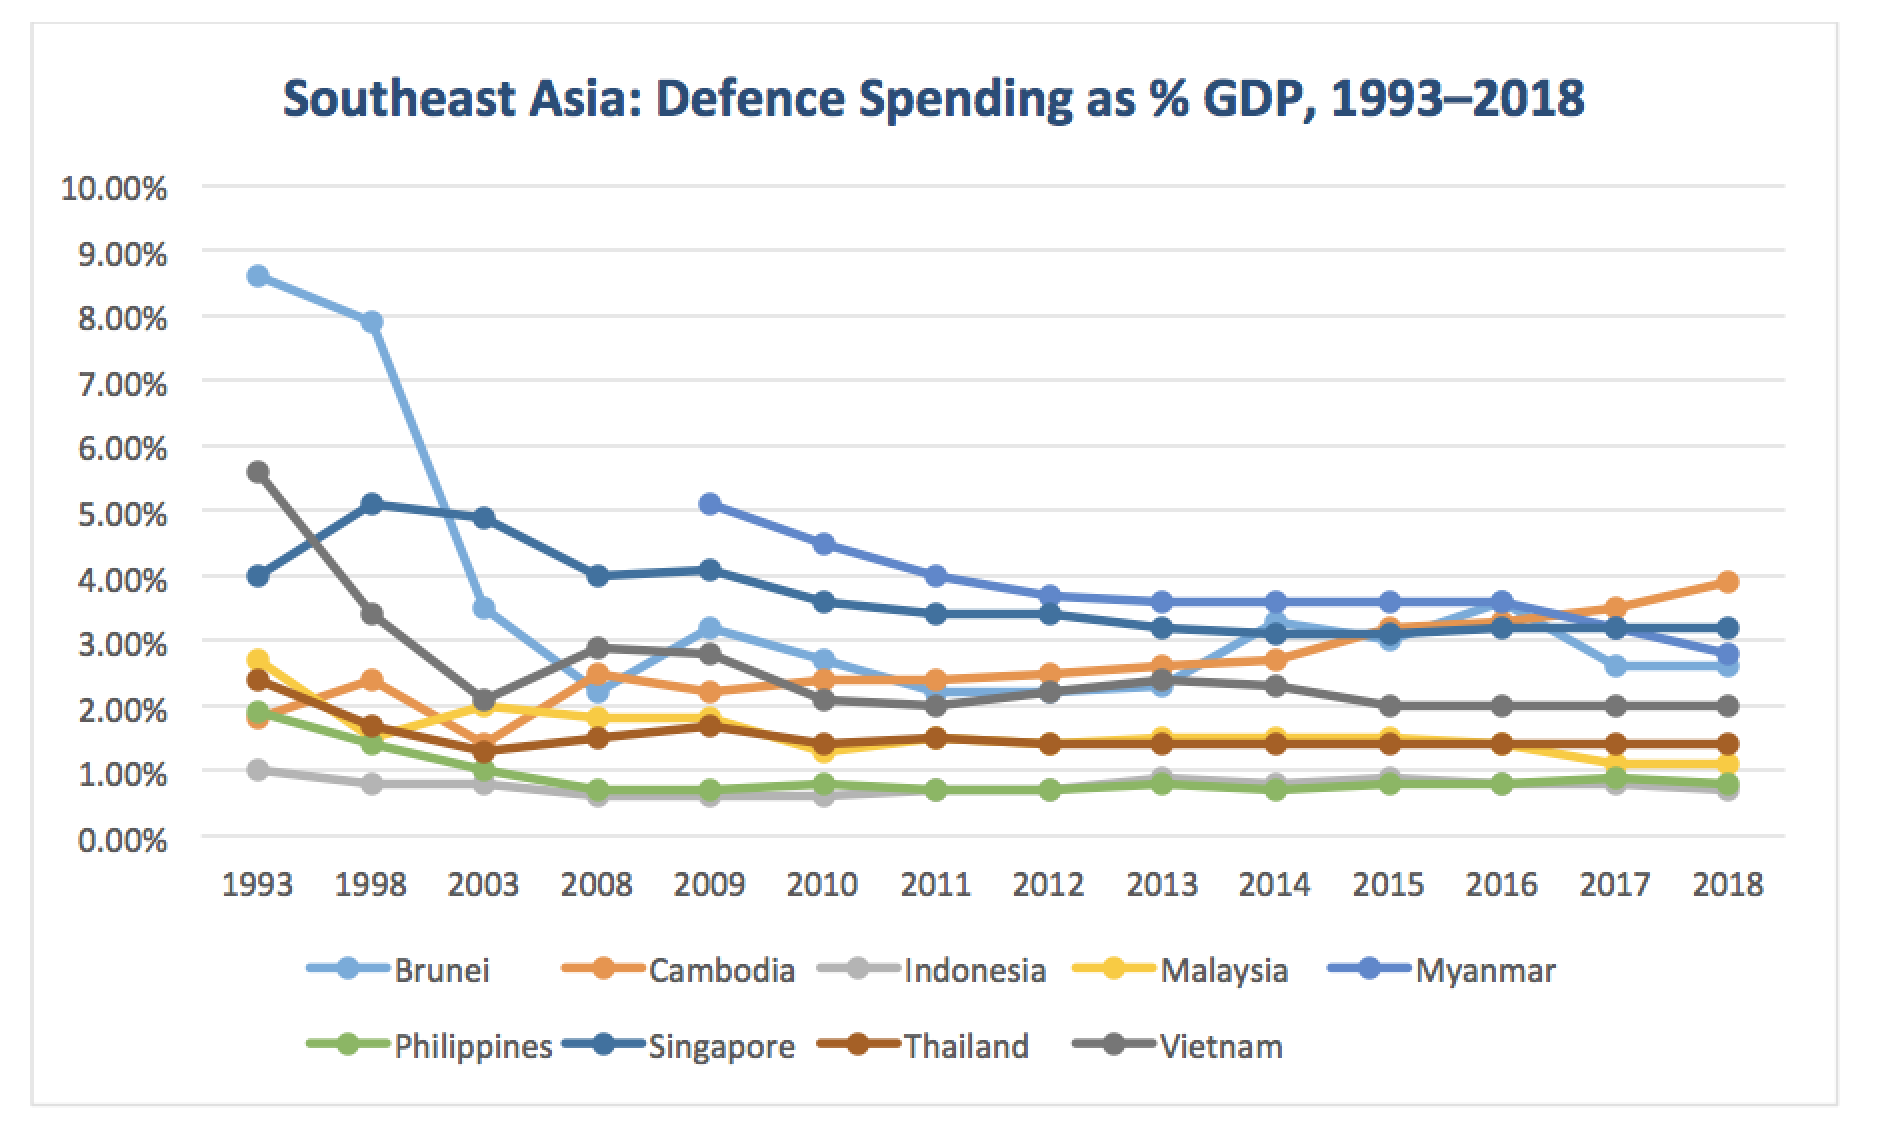 Southeast Asian countries' increased defence spending has mirrored their economic growth